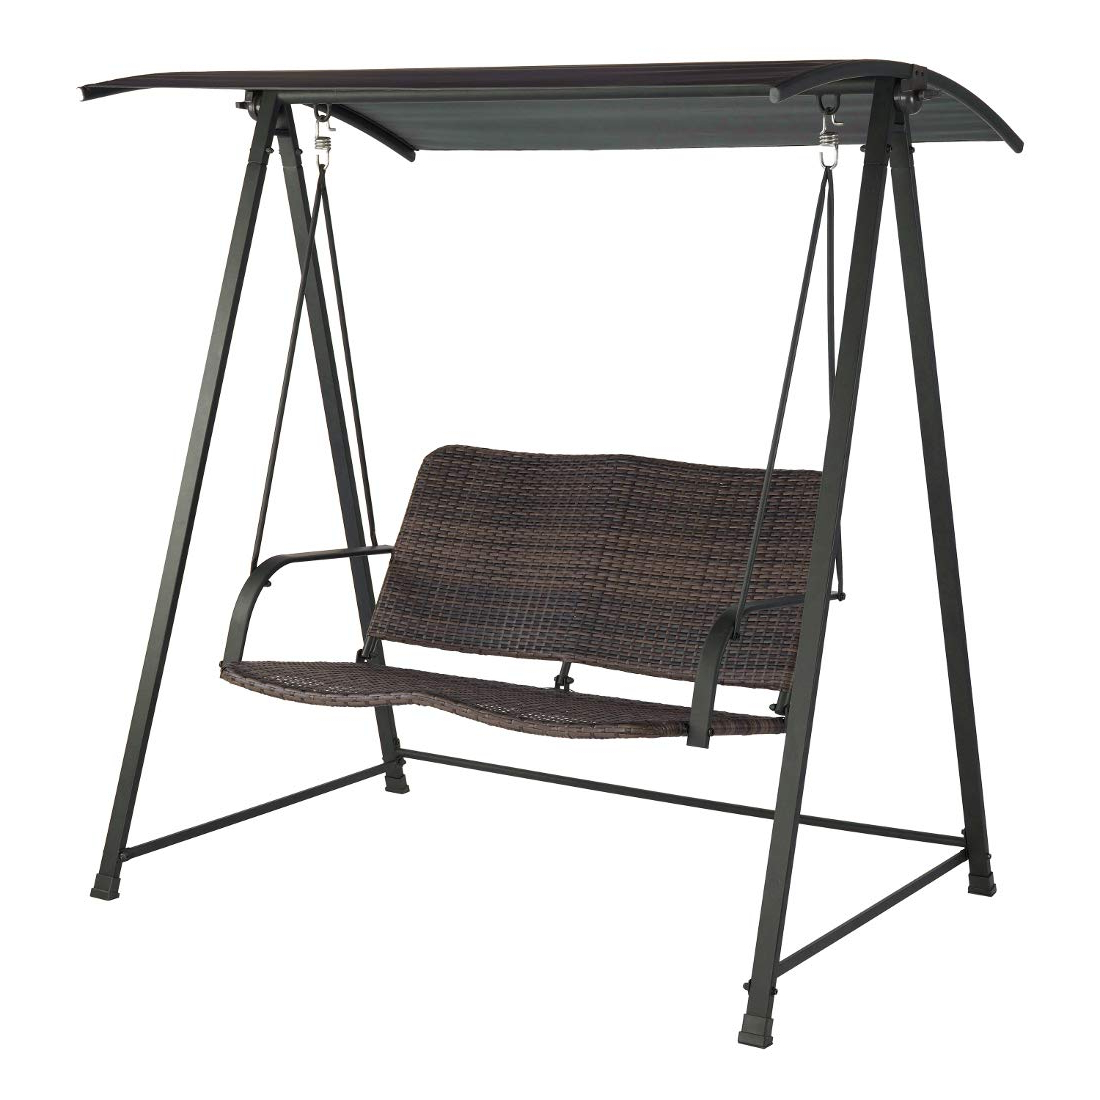 Most Recently Released Patio Porch Swings With Stand Within Amazon : Jnwd Resin Wicker Porch Swing Steel Frame Stand (View 28 of 30)